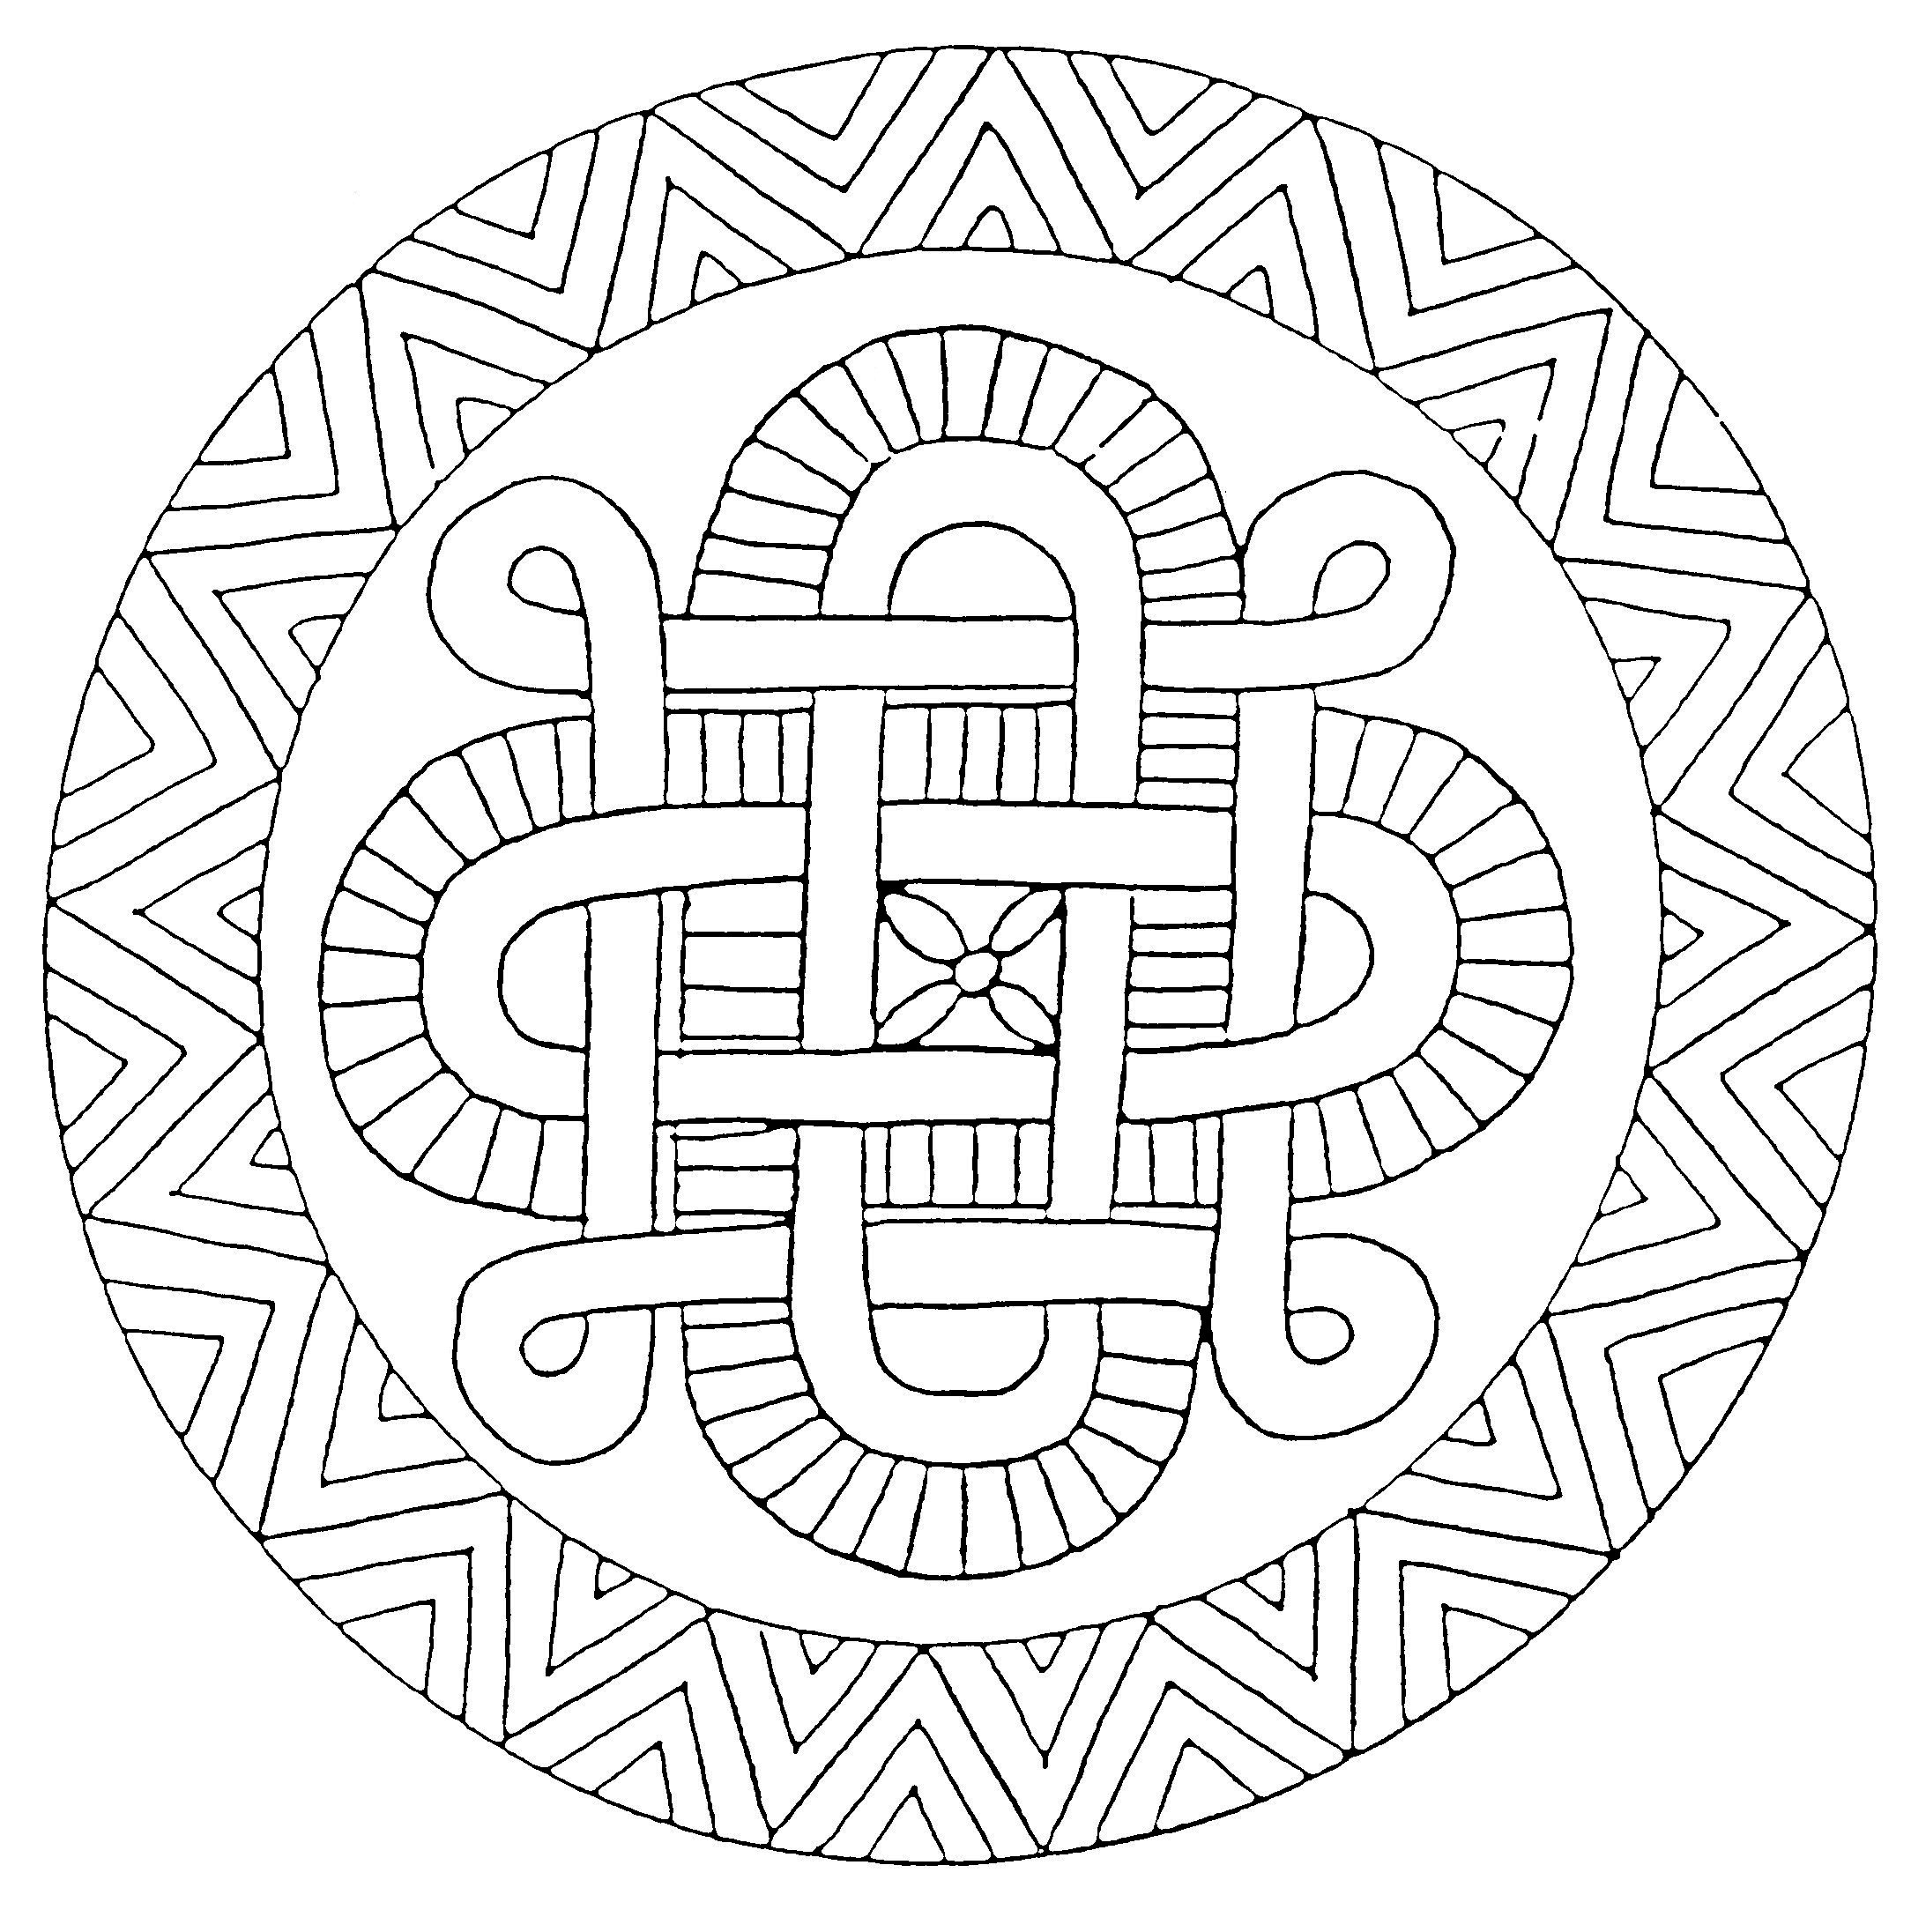 Coloriage Mandala Difficile Hugo L'escargot tout Hugo L Escargot Coloriage Mandala